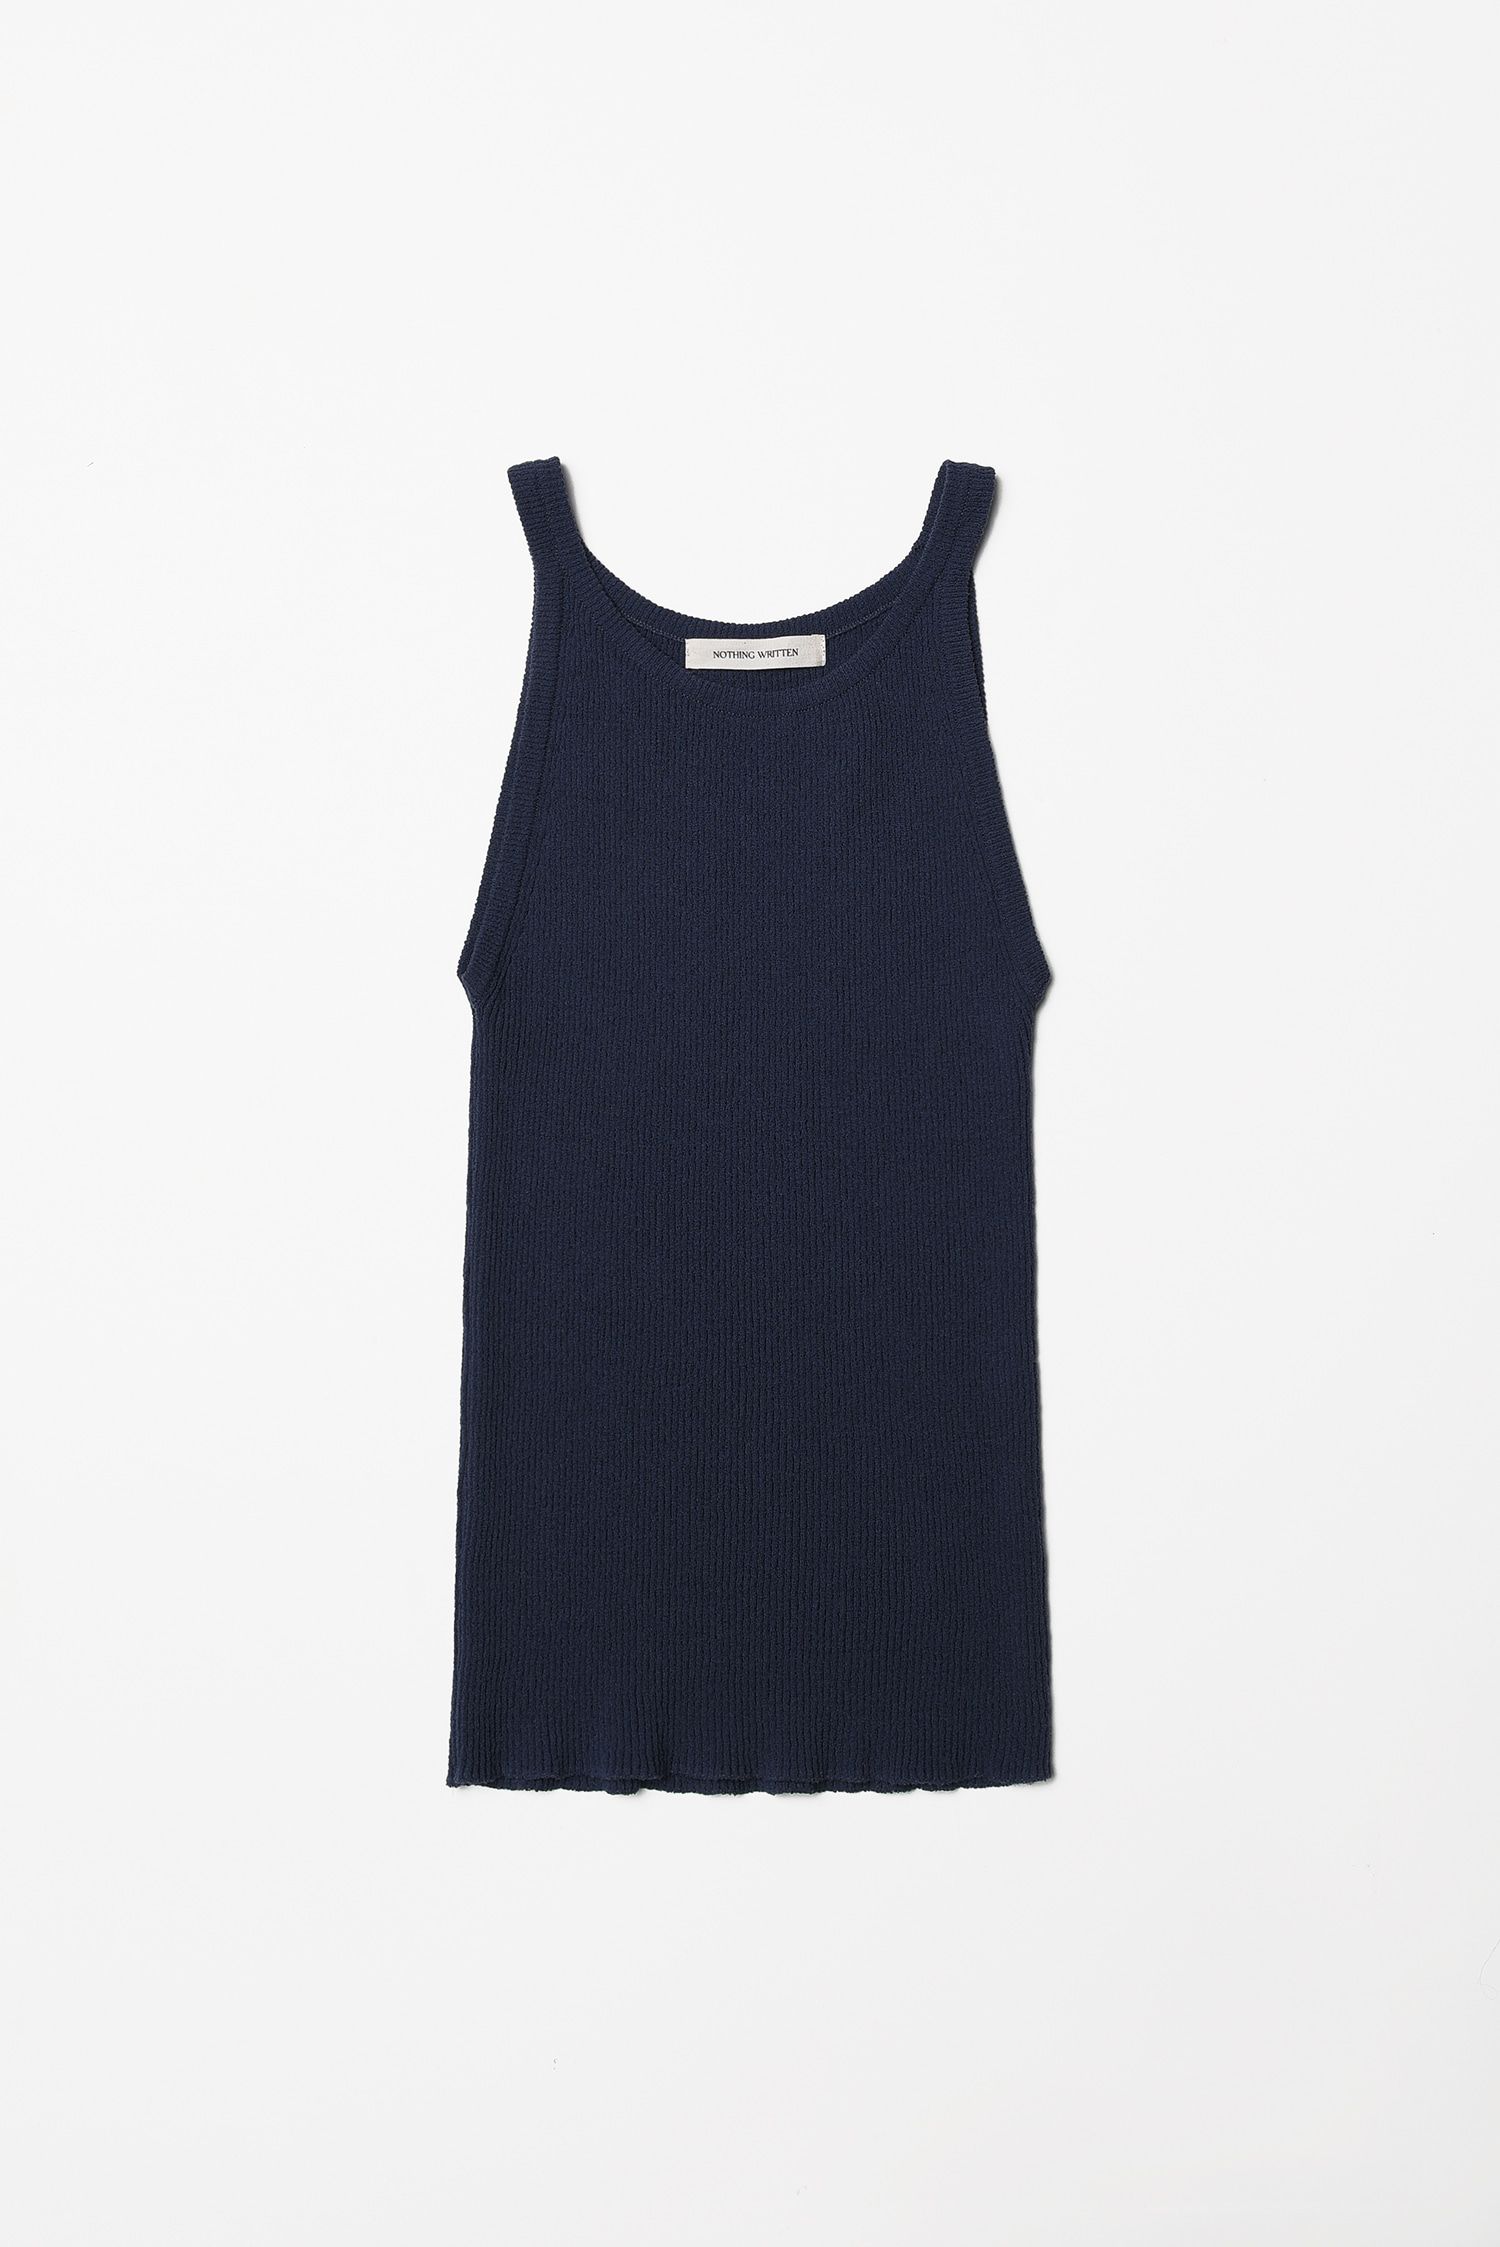 Knit sleeveless (dark blue)